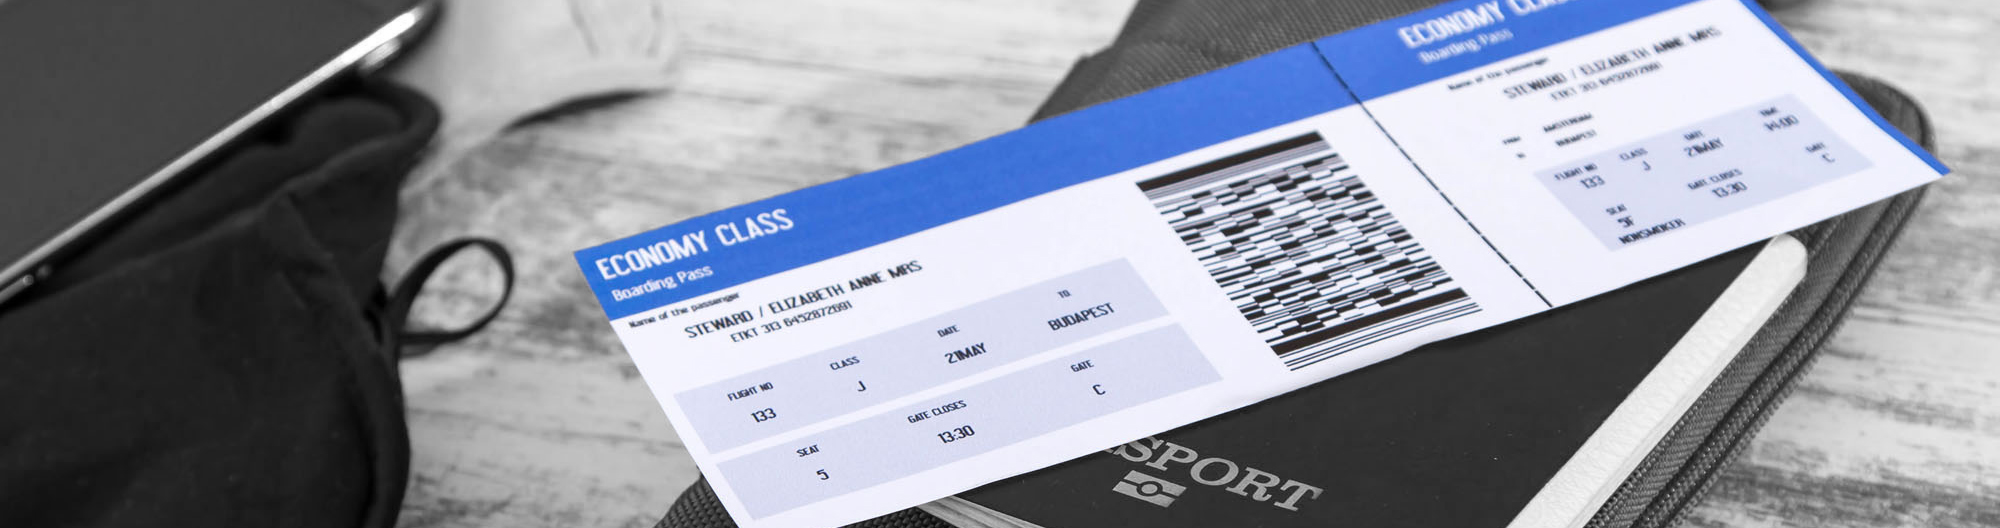 boardingpass-004-cropped